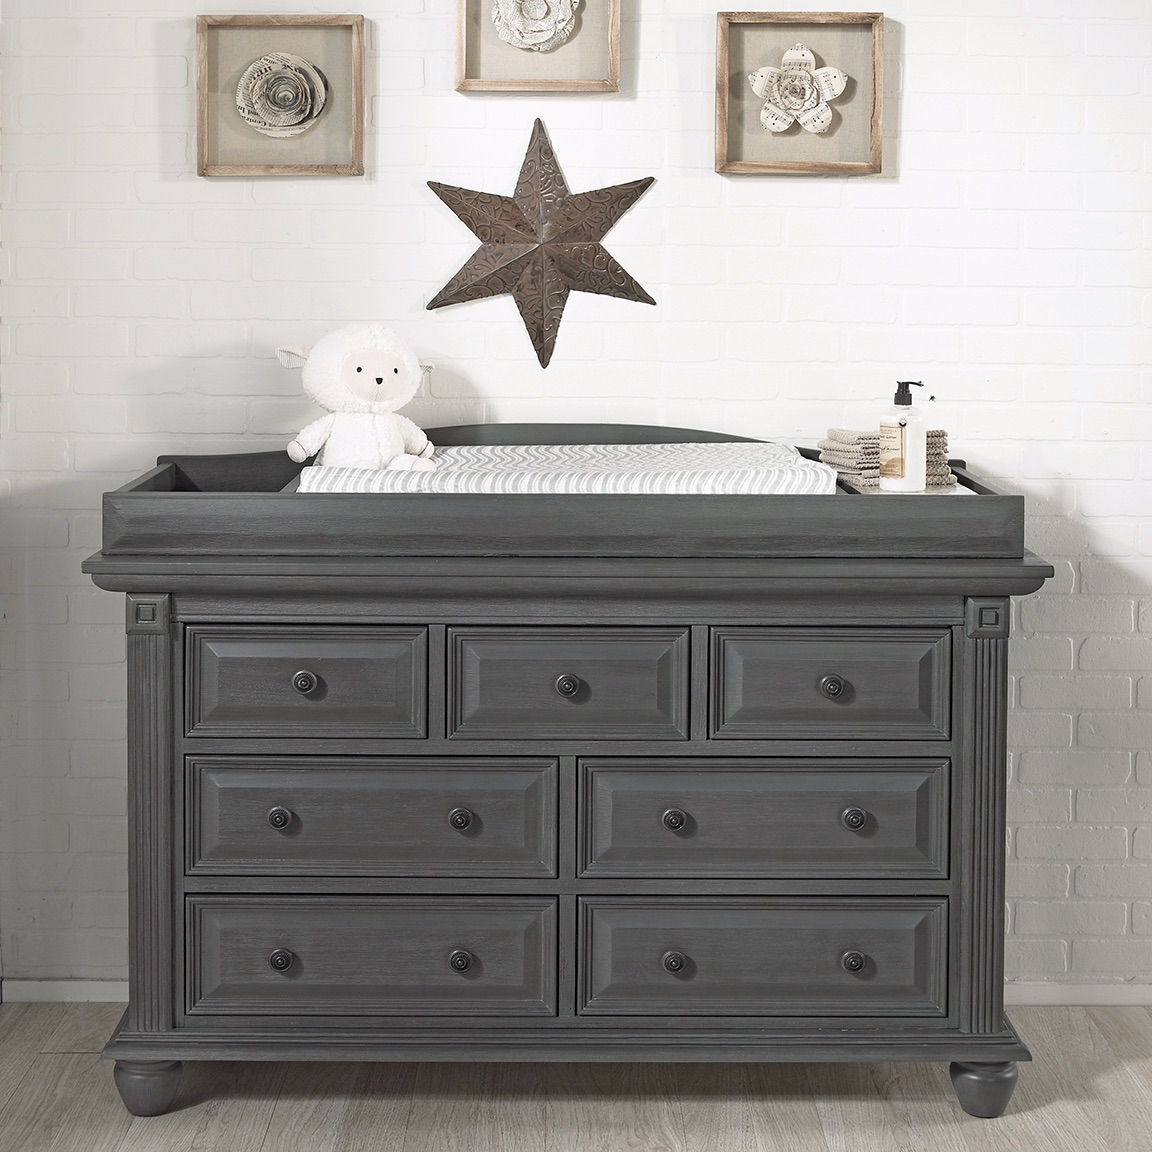 drawers dresser tips babys baby nursery diaperstation lightroom ikea drawer of s organization changing room